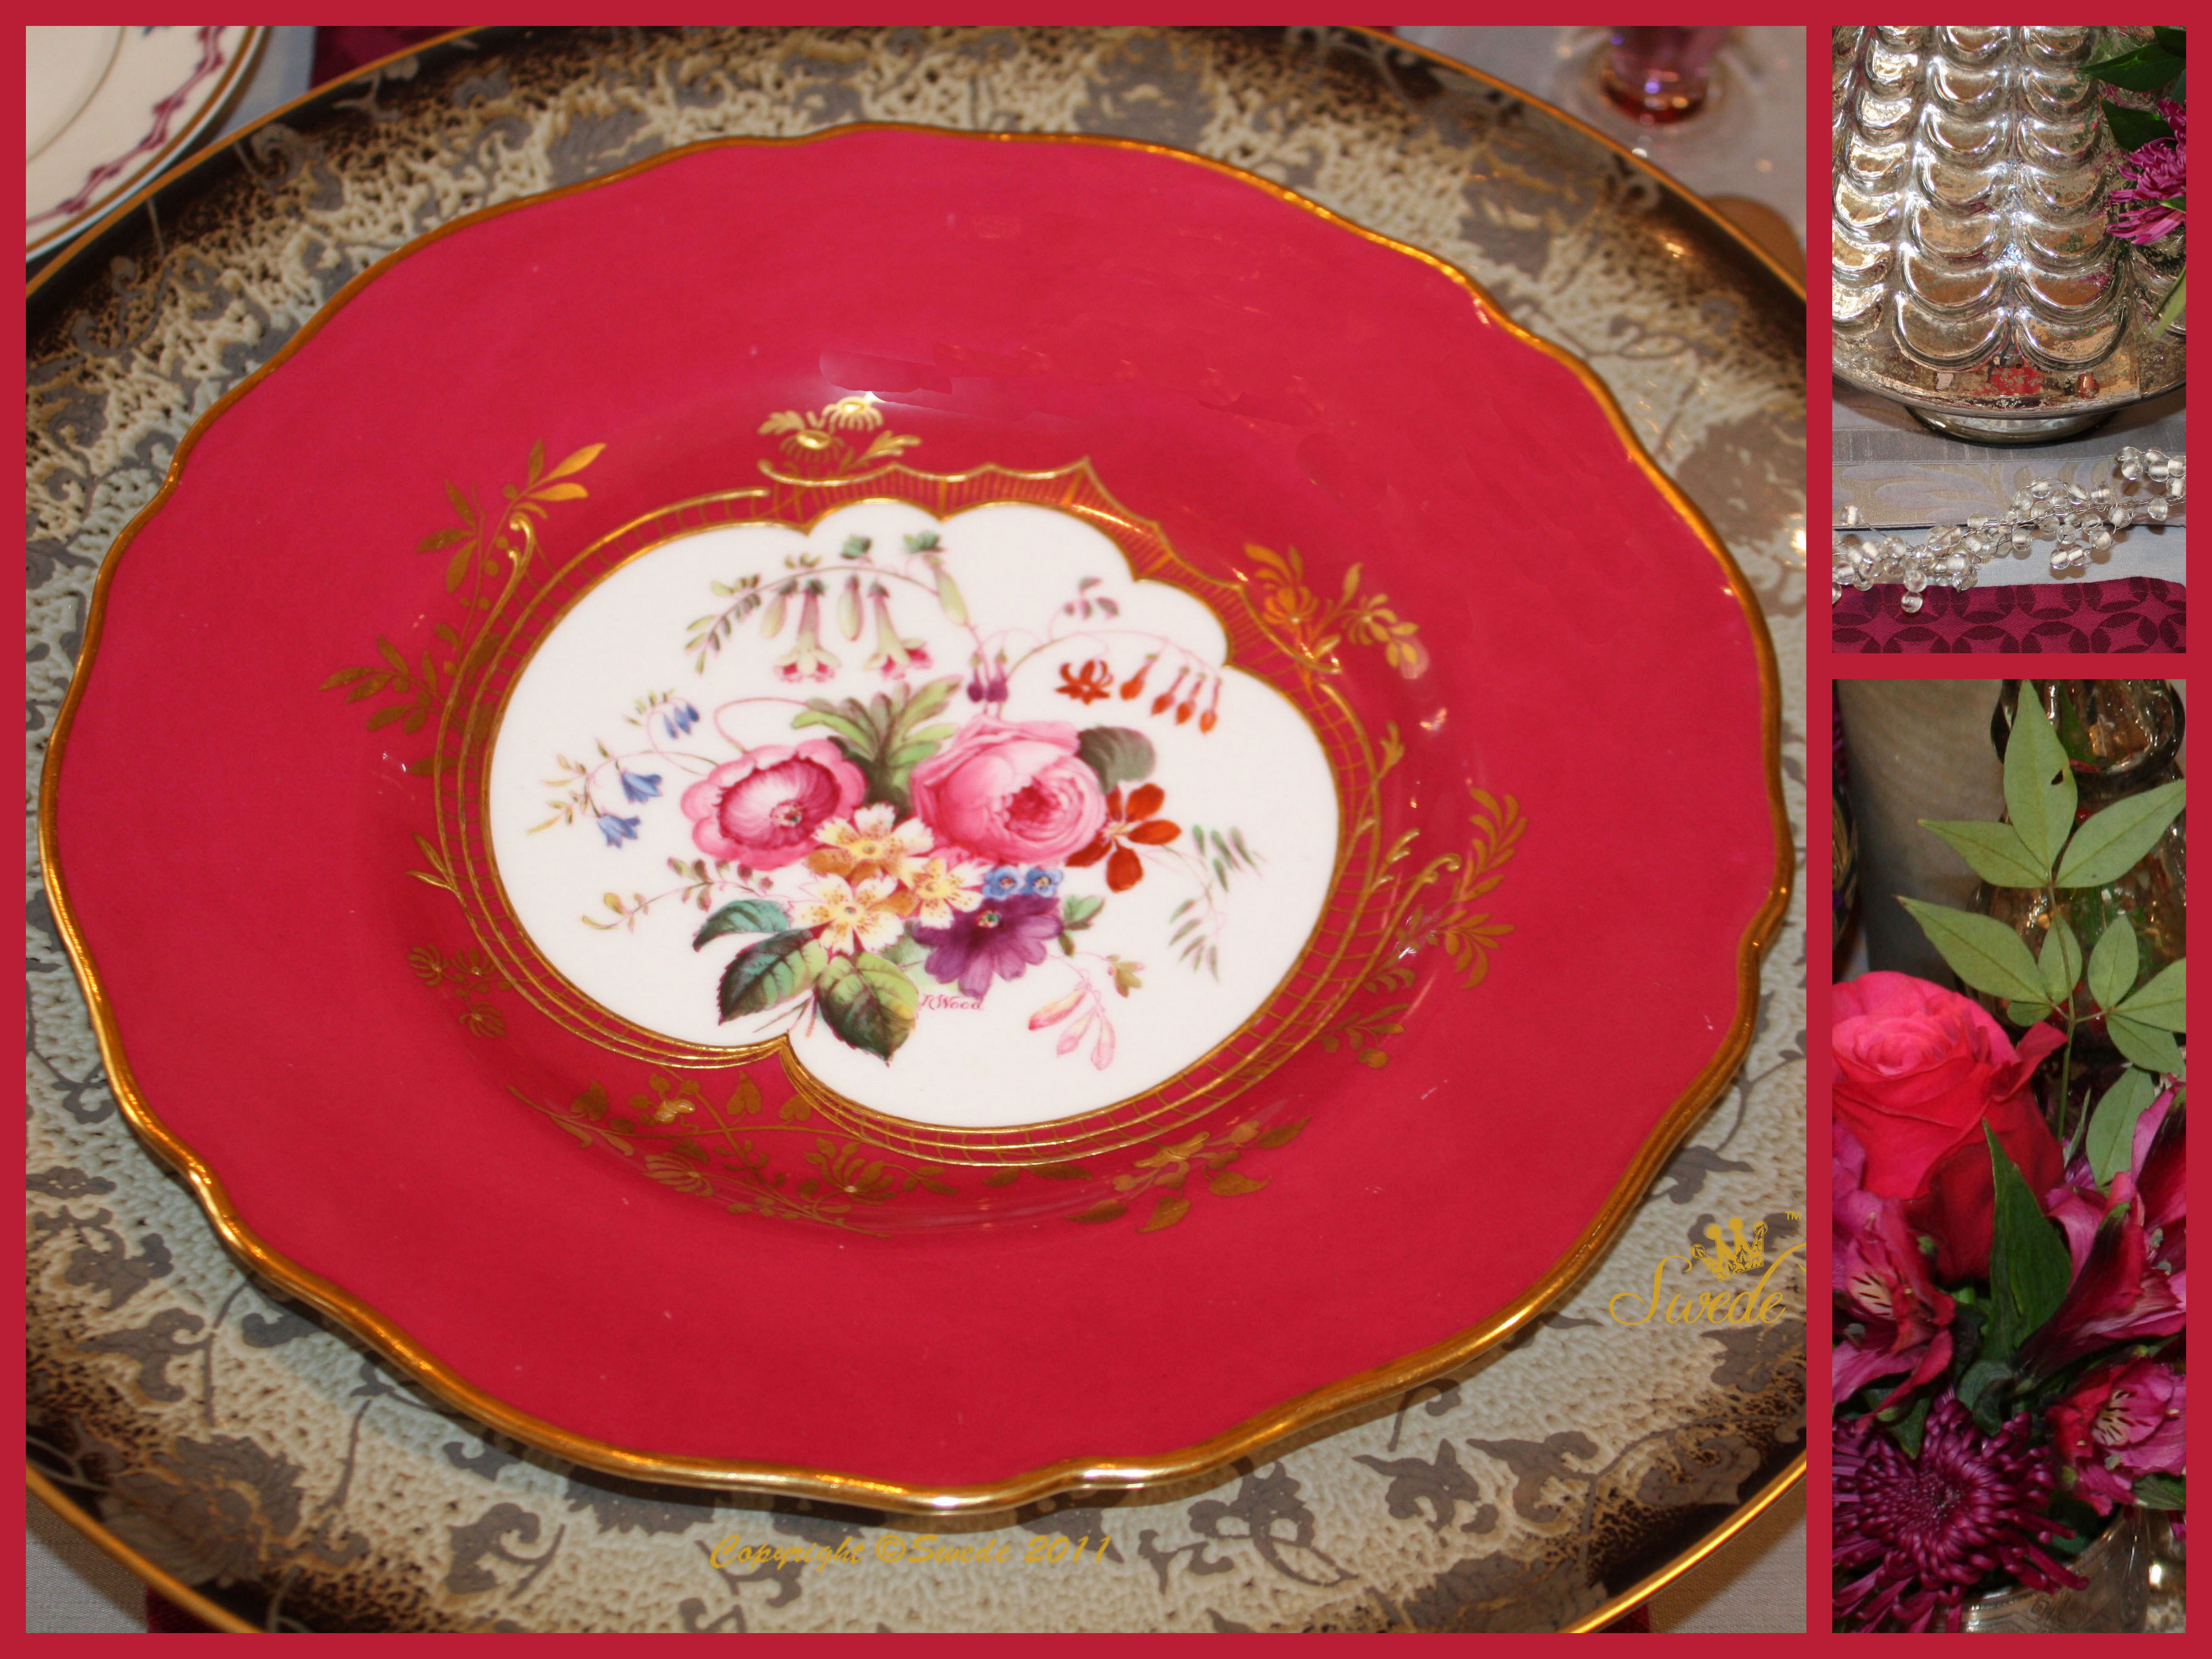 The Spode Copeland plates are a perfect match to the red Roses in the antique baby cups. & Tablescape: Cranberry and Magenta - Swede